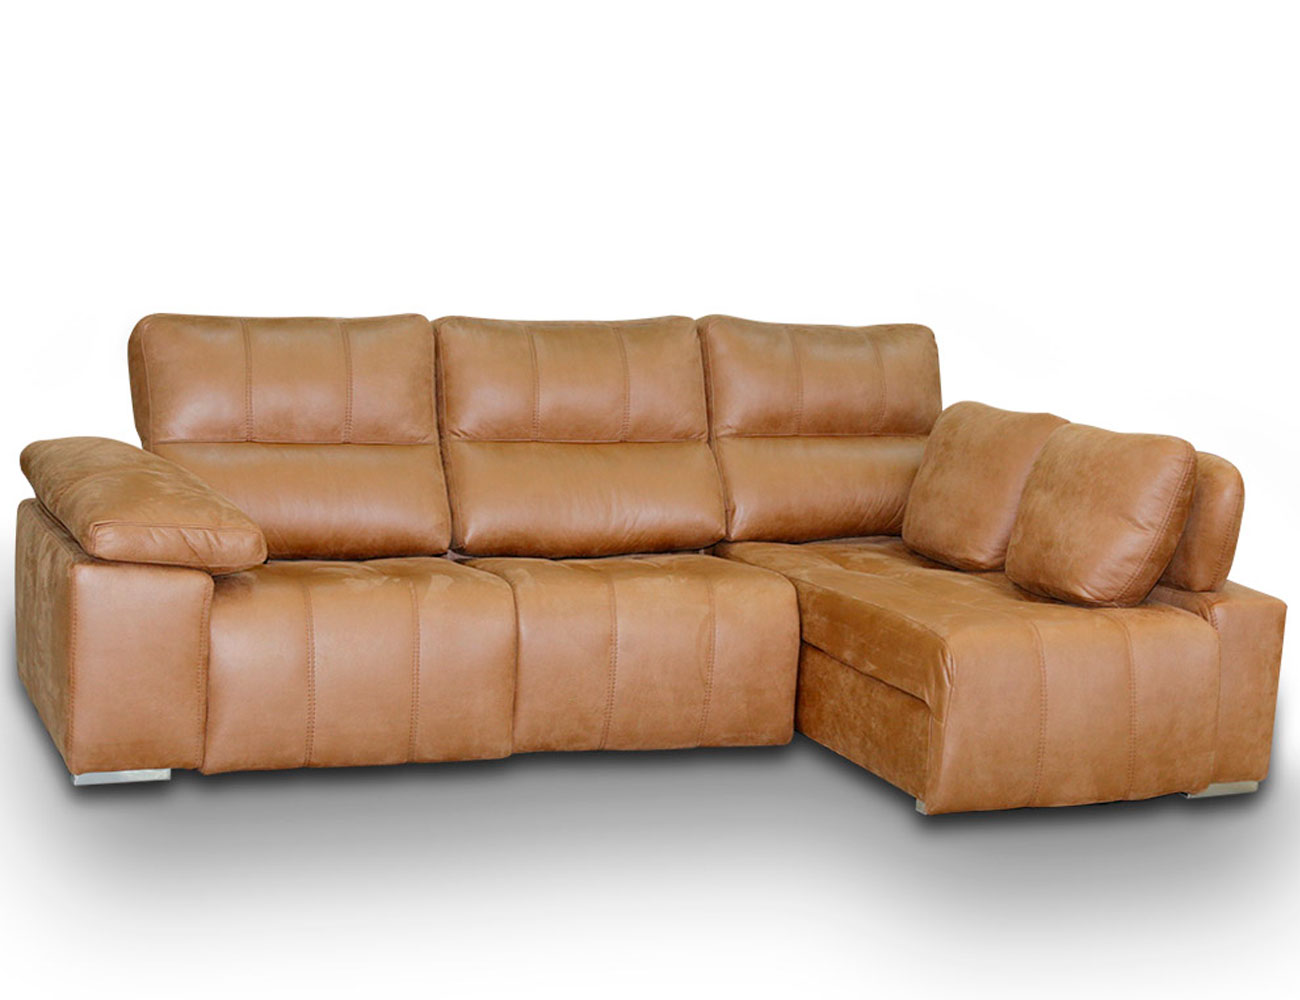 Sofa chaiselongue relax 2 motores anti manchas16